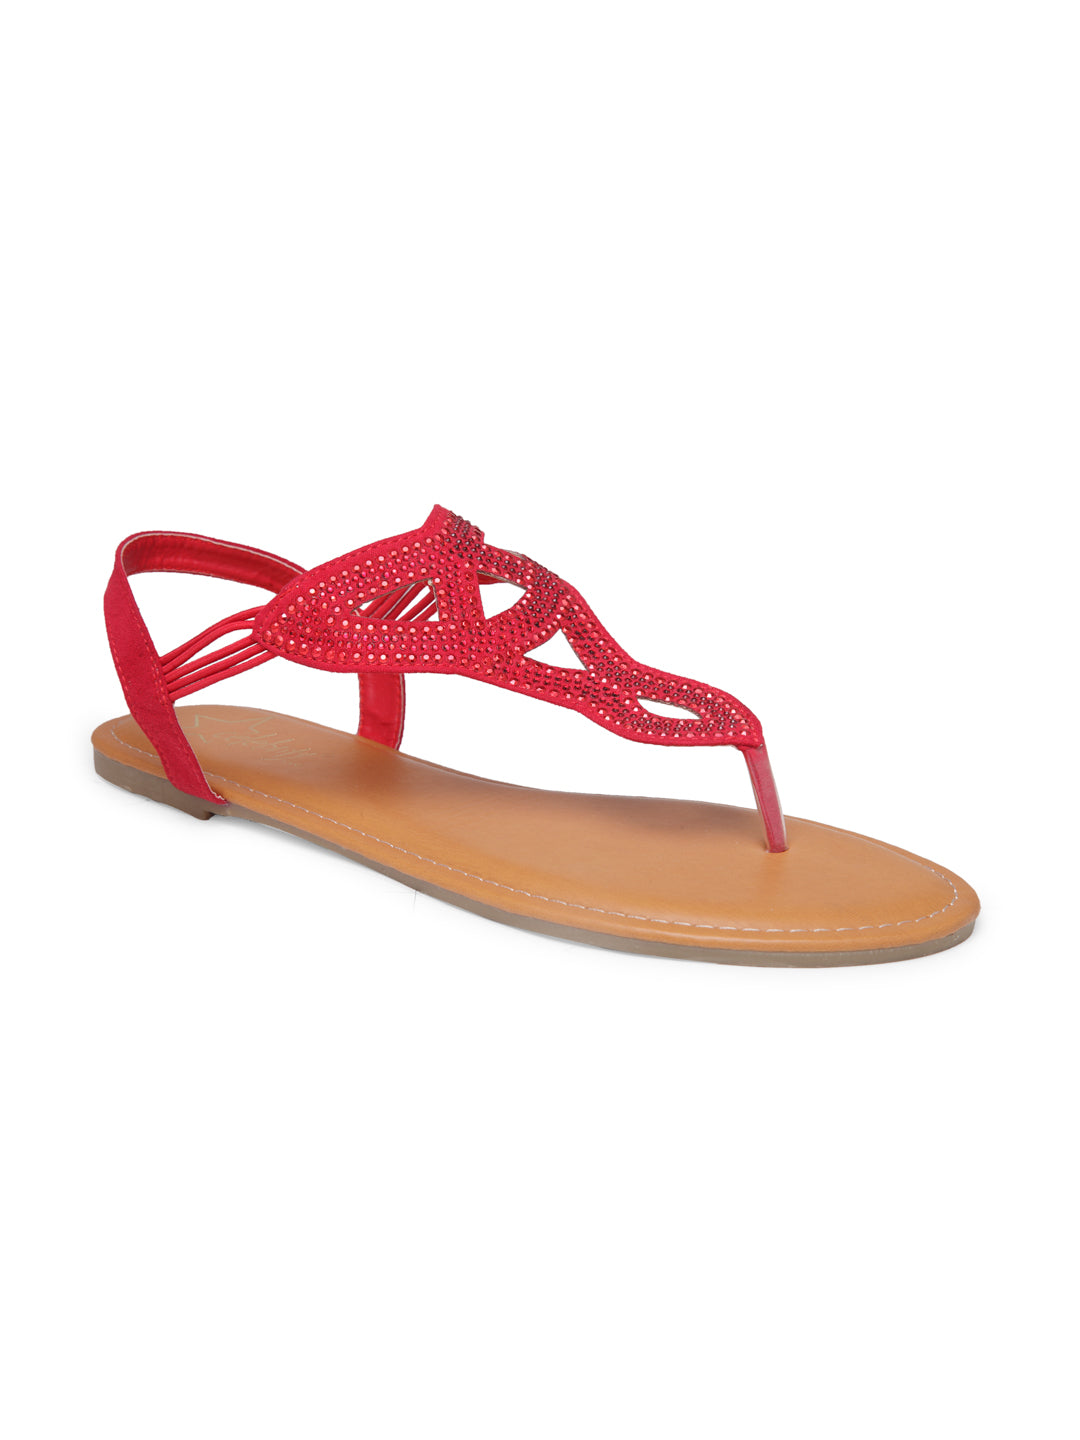 Womens Red Flat Sandals - London Rag India